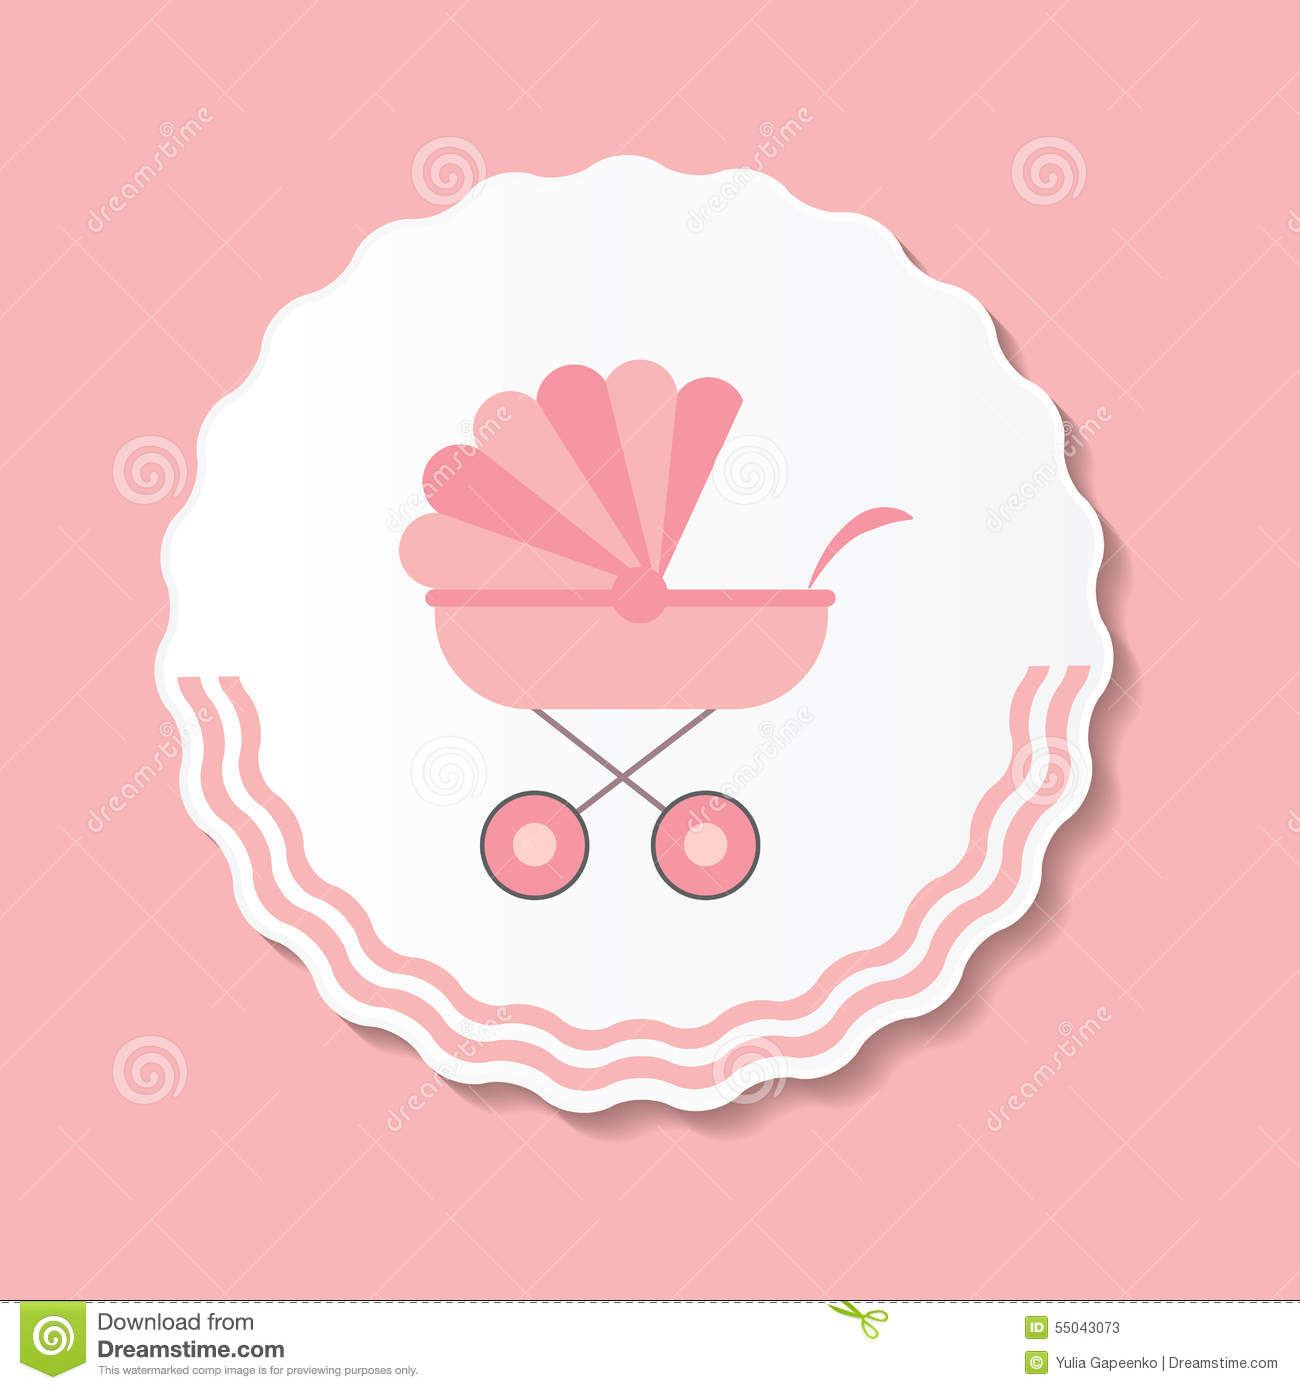 Vector illustration of pink baby carriage for stock